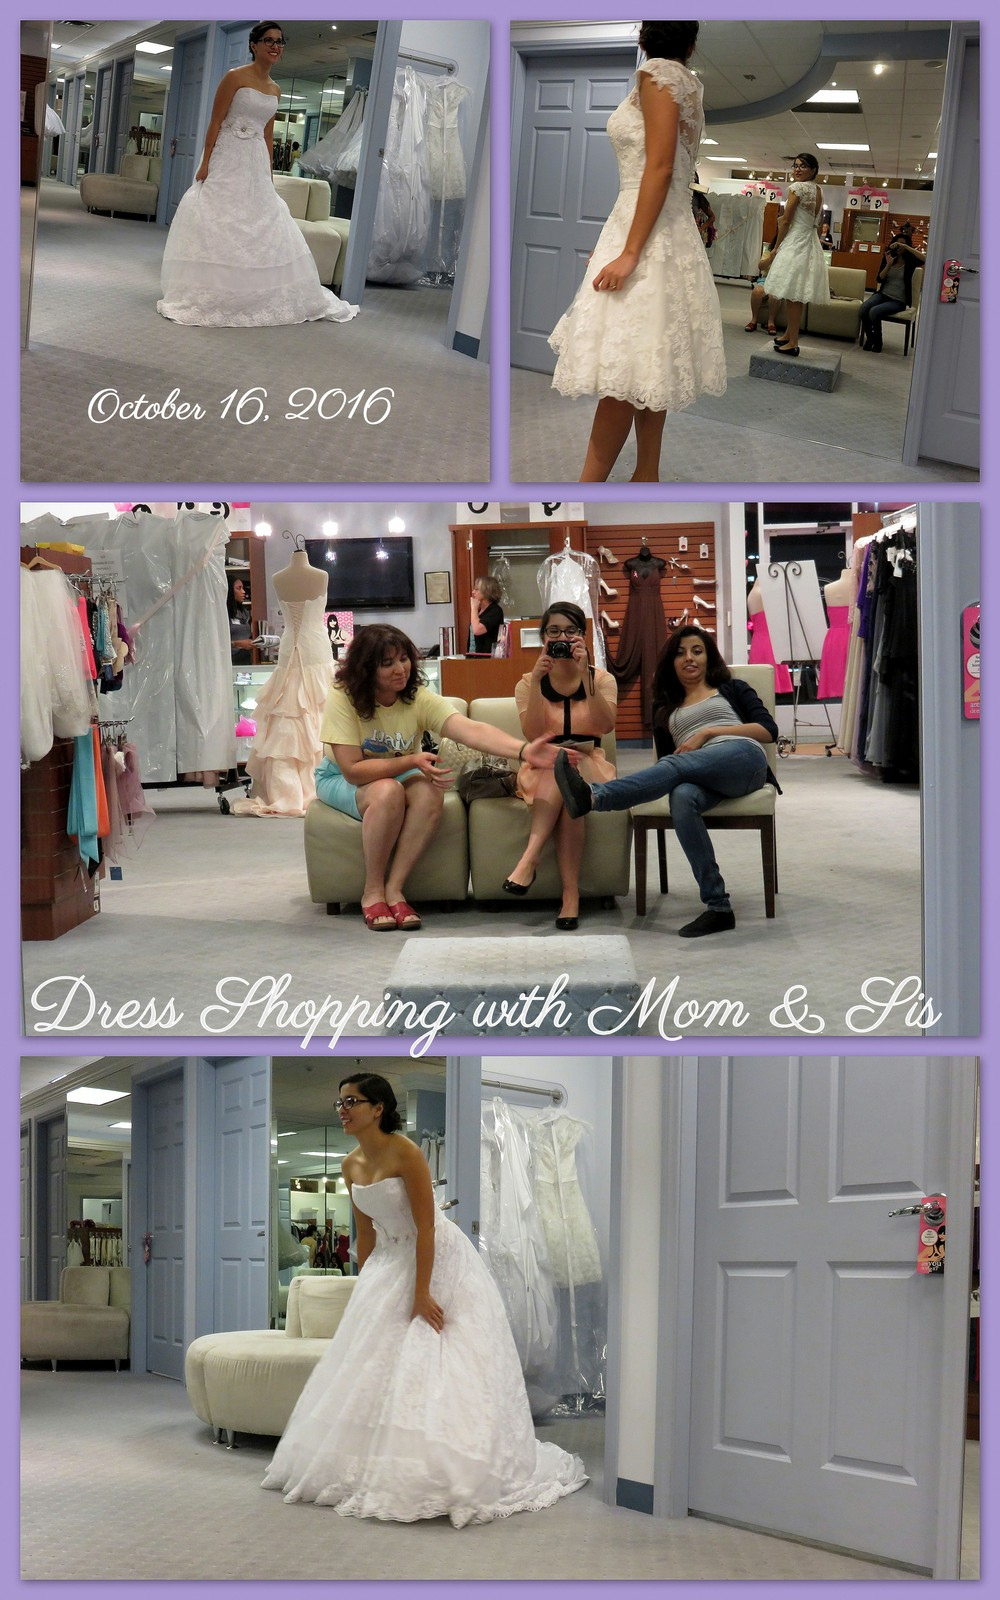 Dress shopping was so lovely!